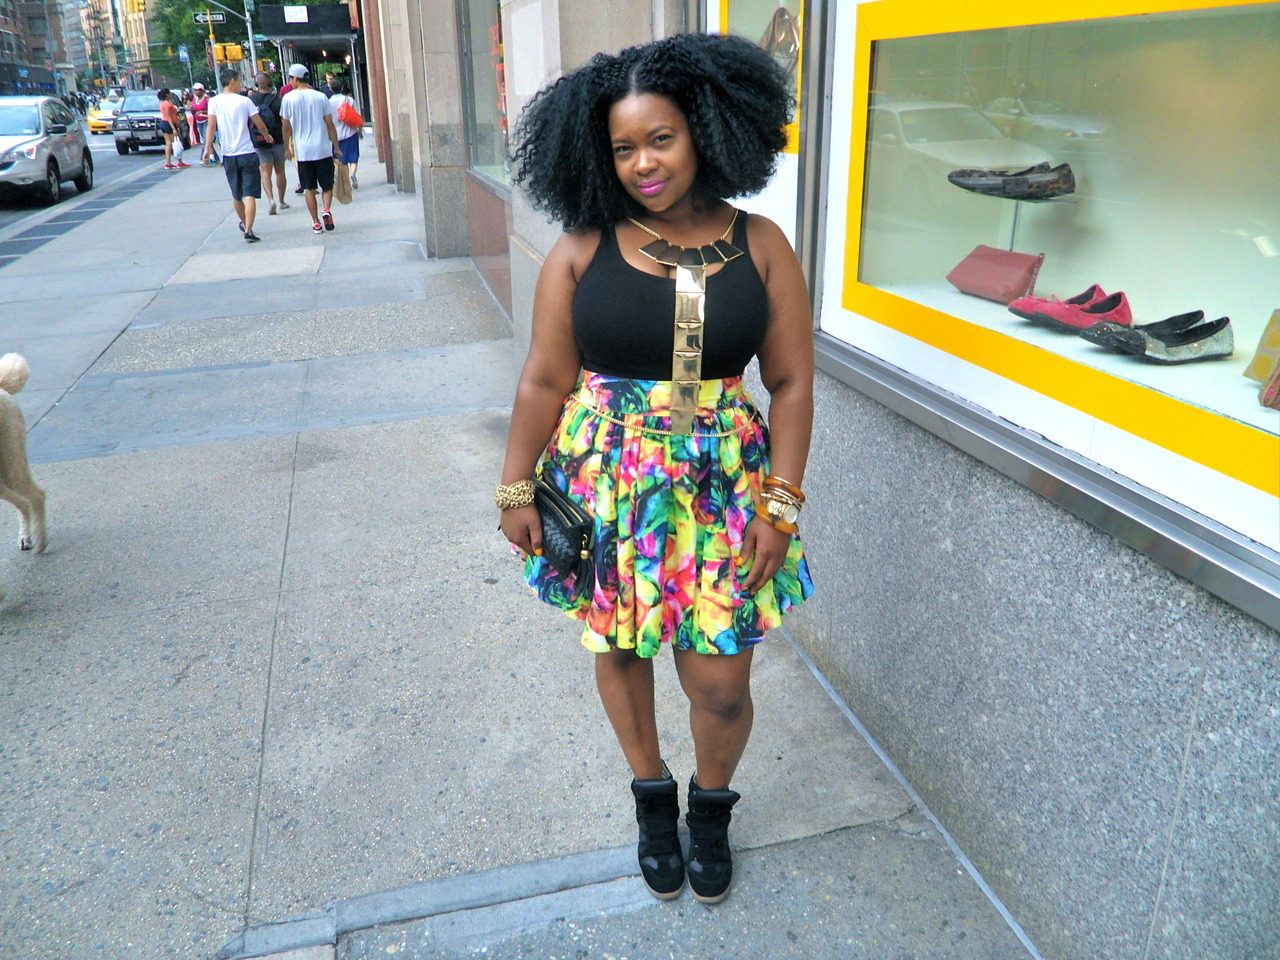 blackfashion:  Name: Keisha Location: City that never sleeps Submitted by: hi-imcurrentlyobsessed